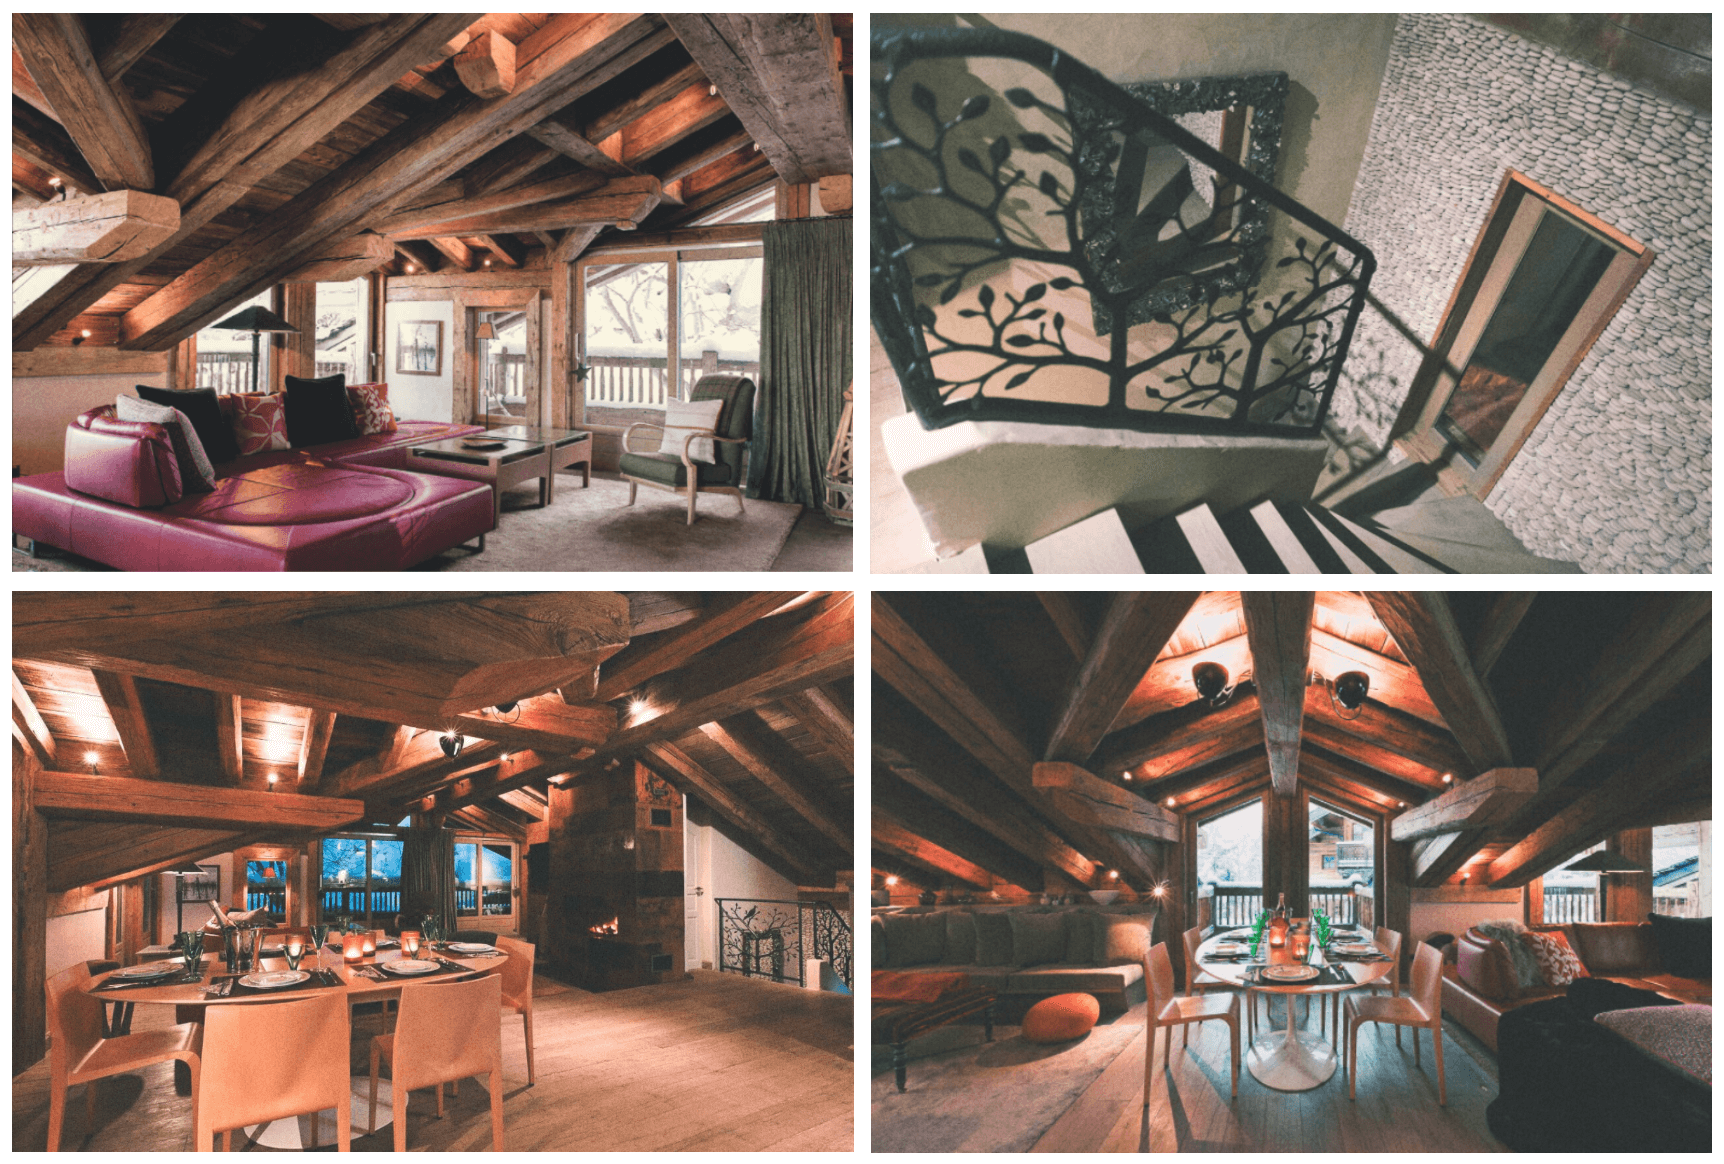 bumper-blog-news-immobilier-lyon-appartement-vente-achat-investir-homestaging-design-decoration-lifestyle-art-chalet-courchevel-3.png